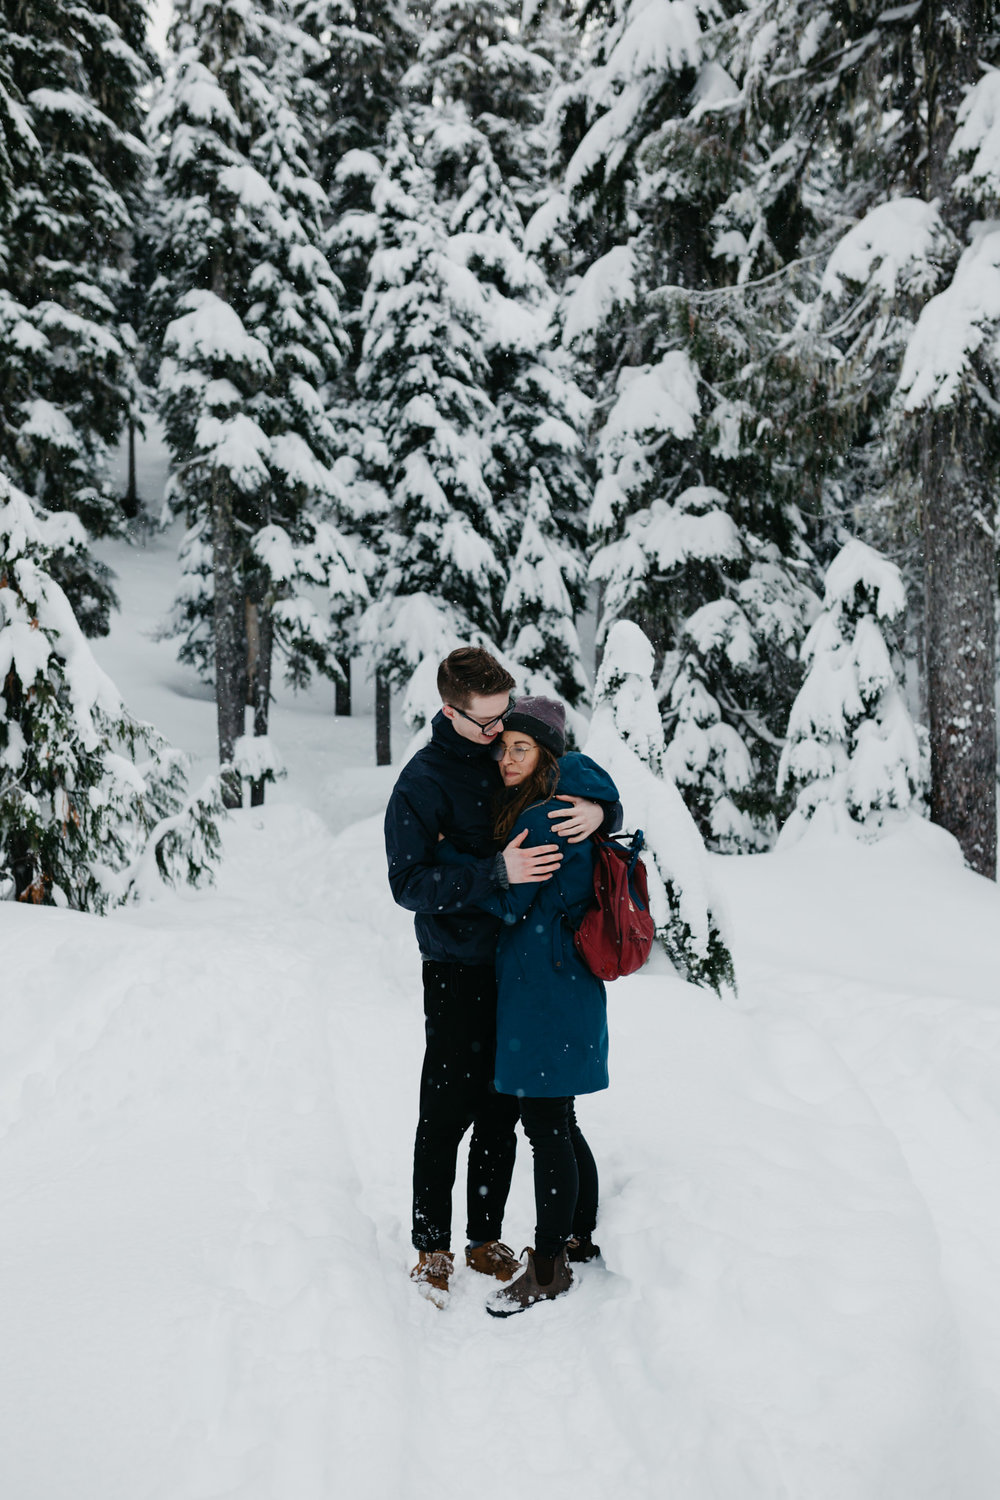 greg+jade-mount-washington-winter-engagement011.JPG